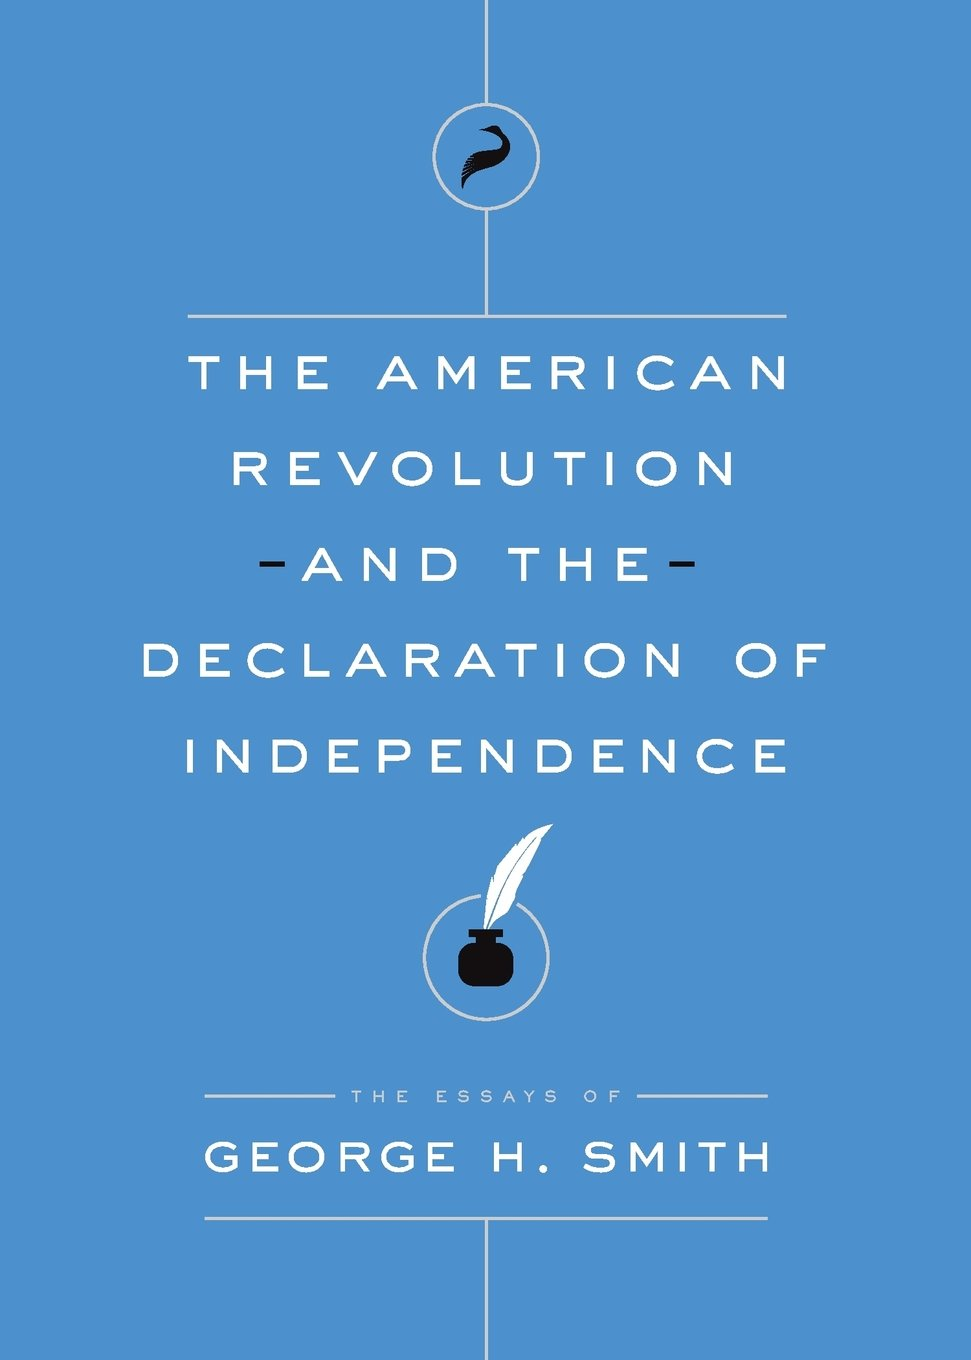 High School Admission Essay Samples The American Revolution And The Declaration Of Independence The Essays Of  George H Smith George H Smith  Amazoncom Books Research Essay Proposal also High School Admission Essay Examples The American Revolution And The Declaration Of Independence The  Persuasive Essay Topics High School